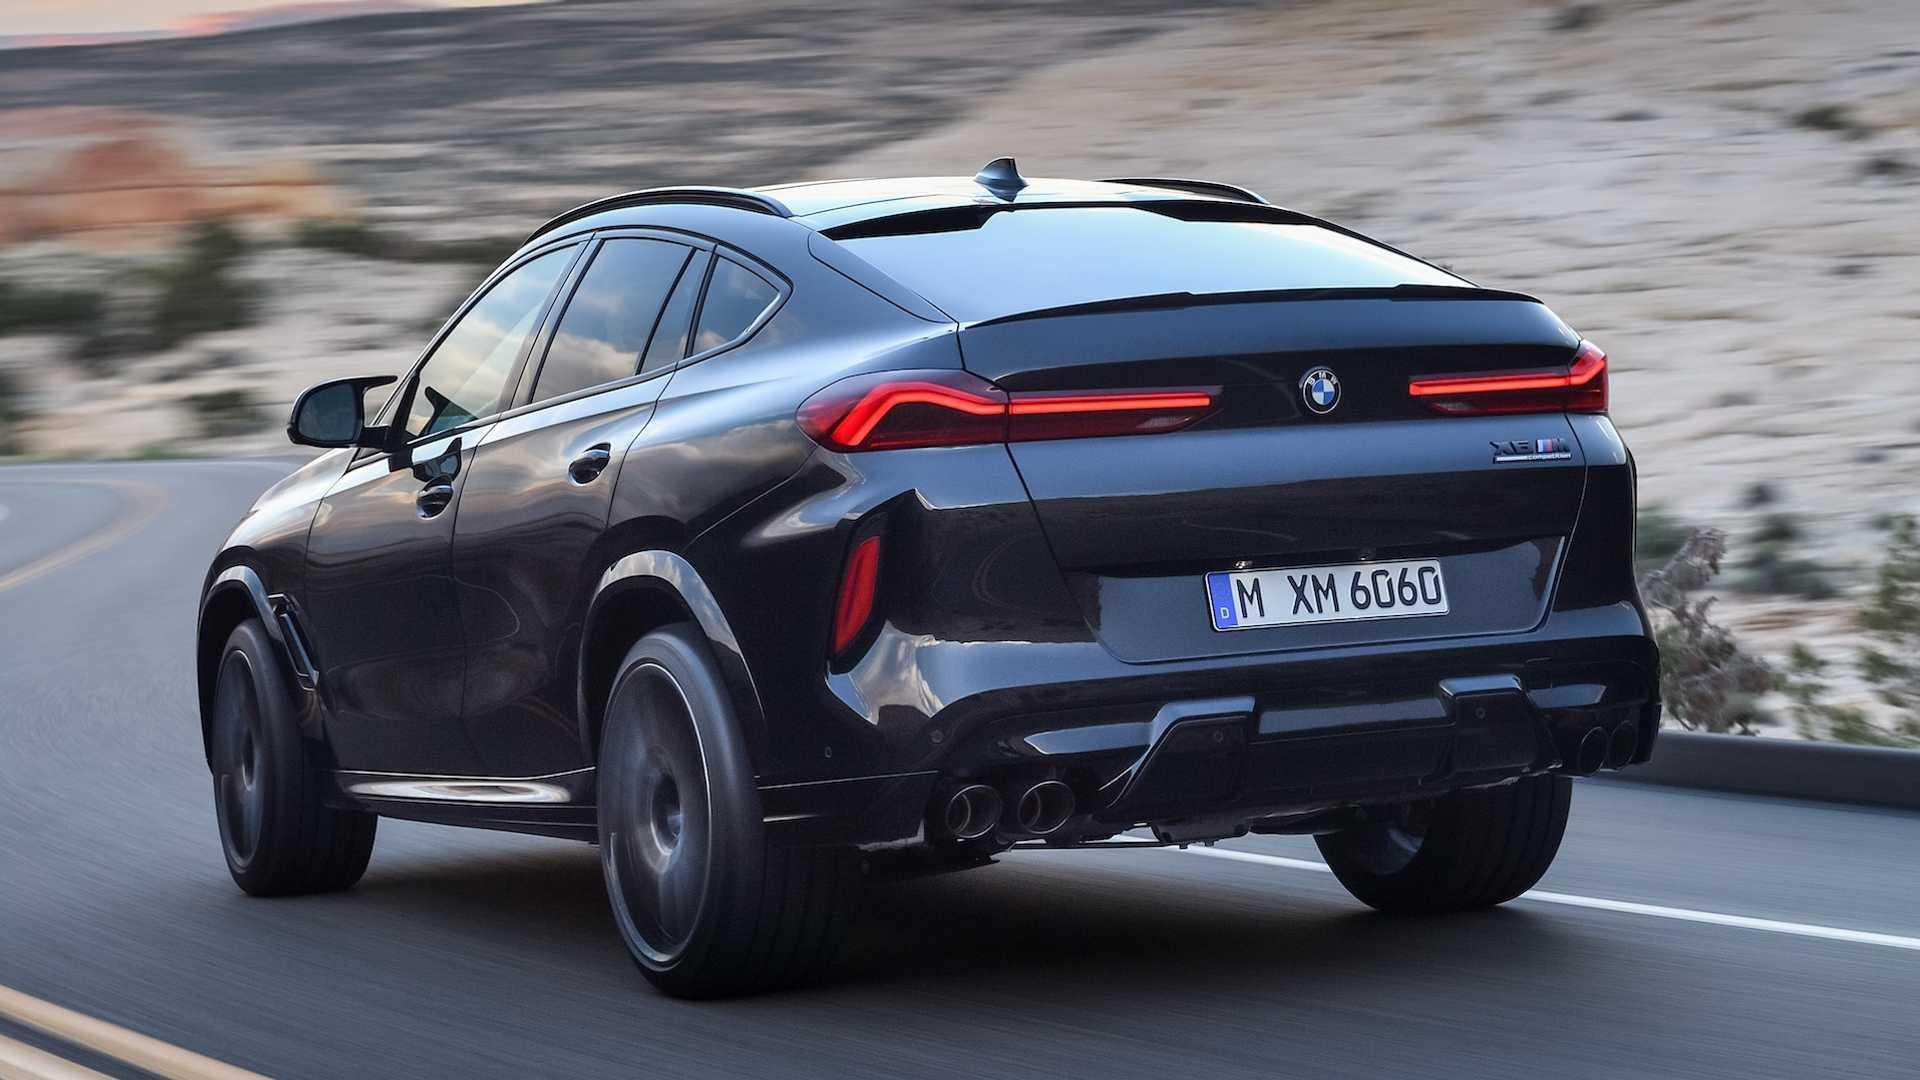 2020 bmw x6 m competition (6)